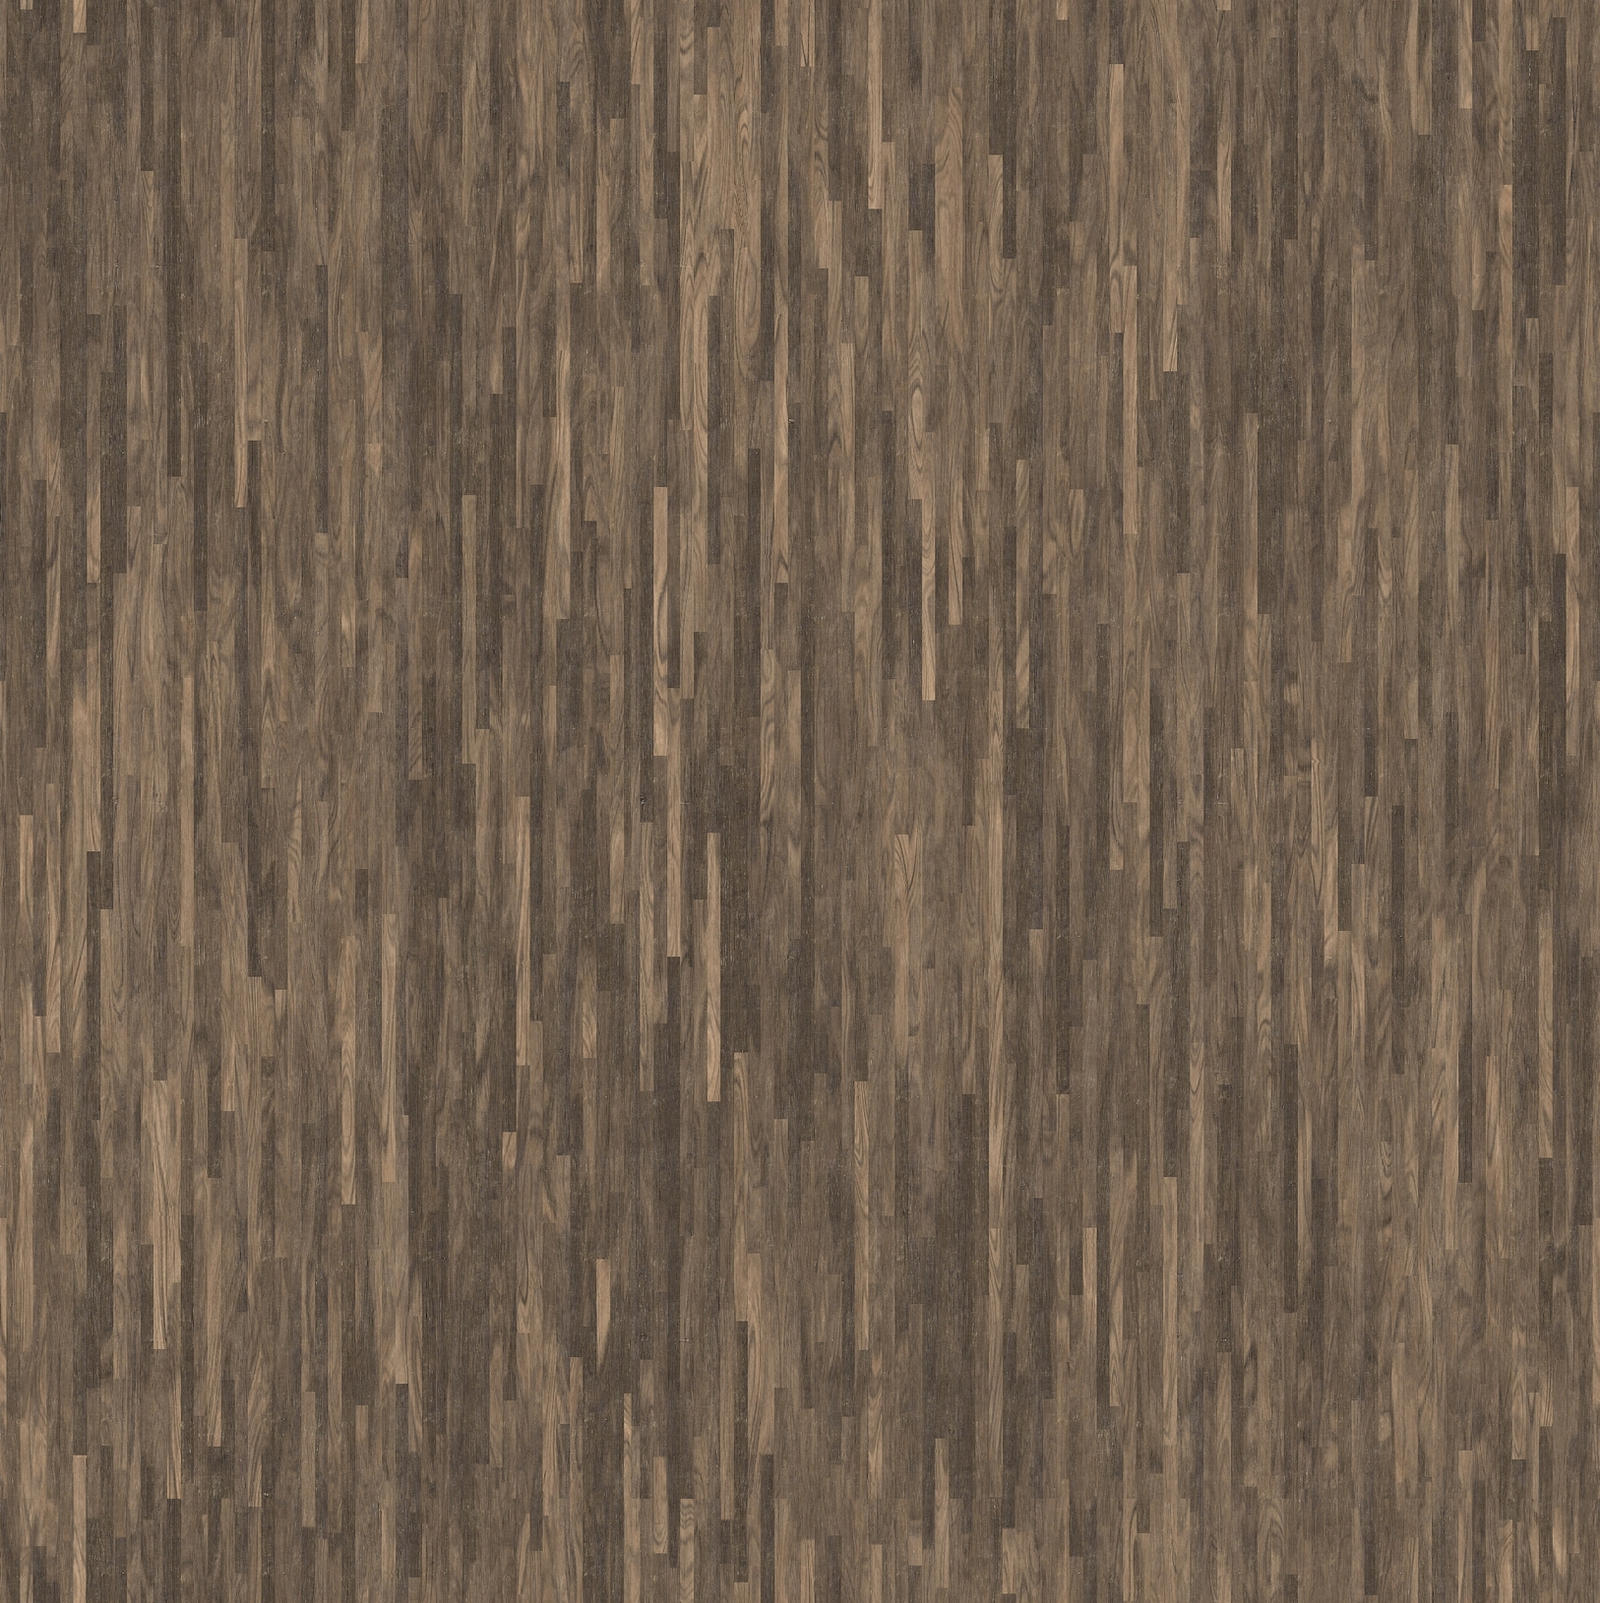 Hardwood floor texture for Floor wood texture